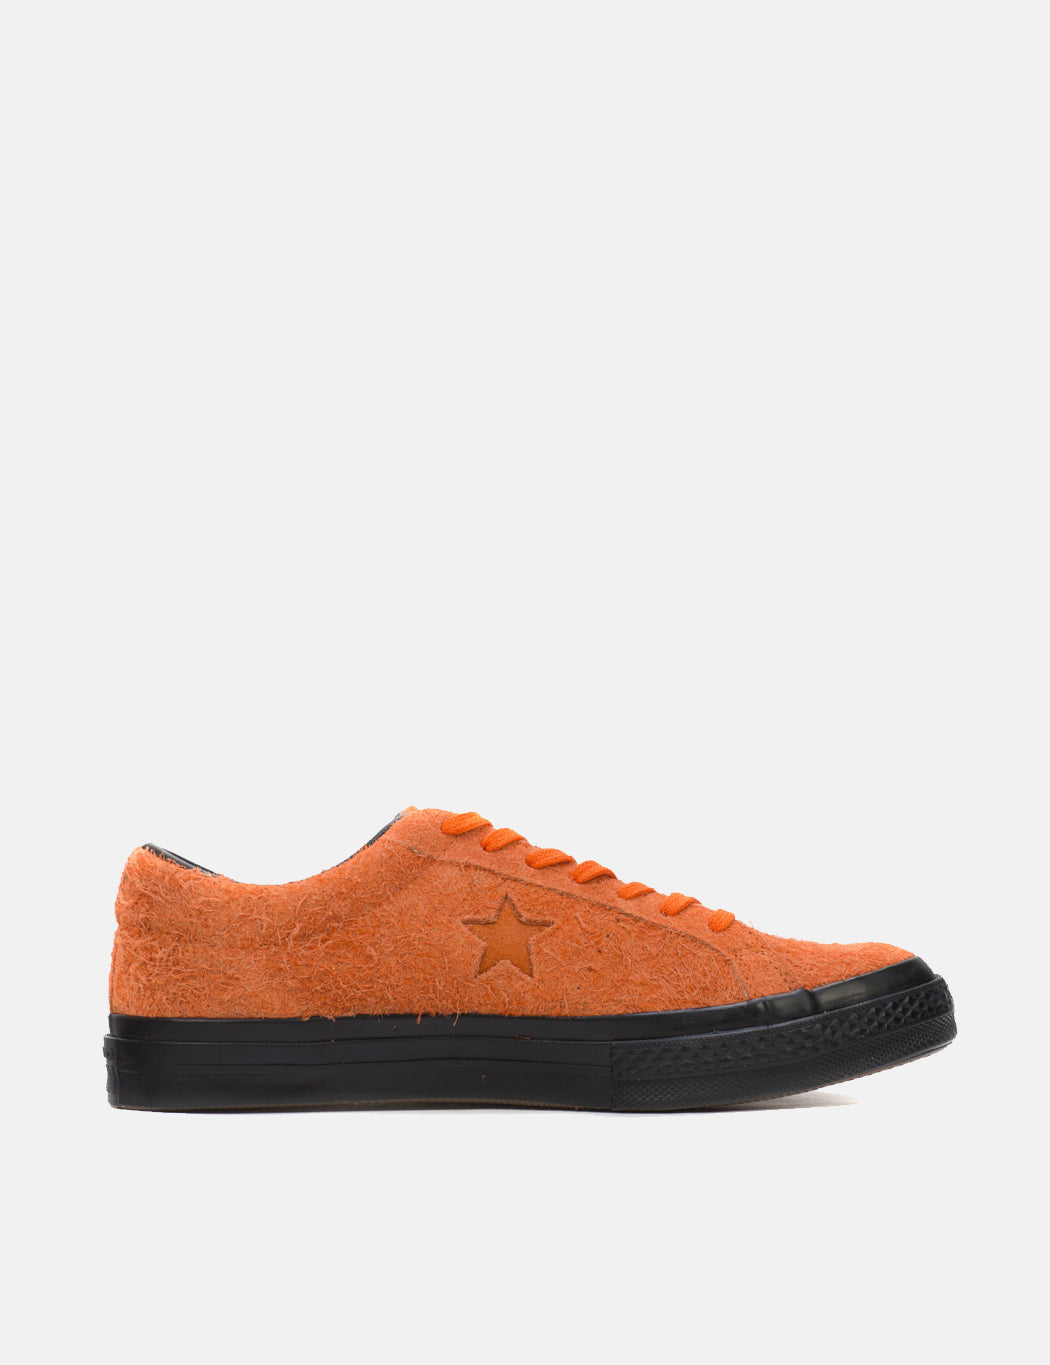 d5871e30681d Converse One Star Ox Low Suede (163811C) in Orange Tiger